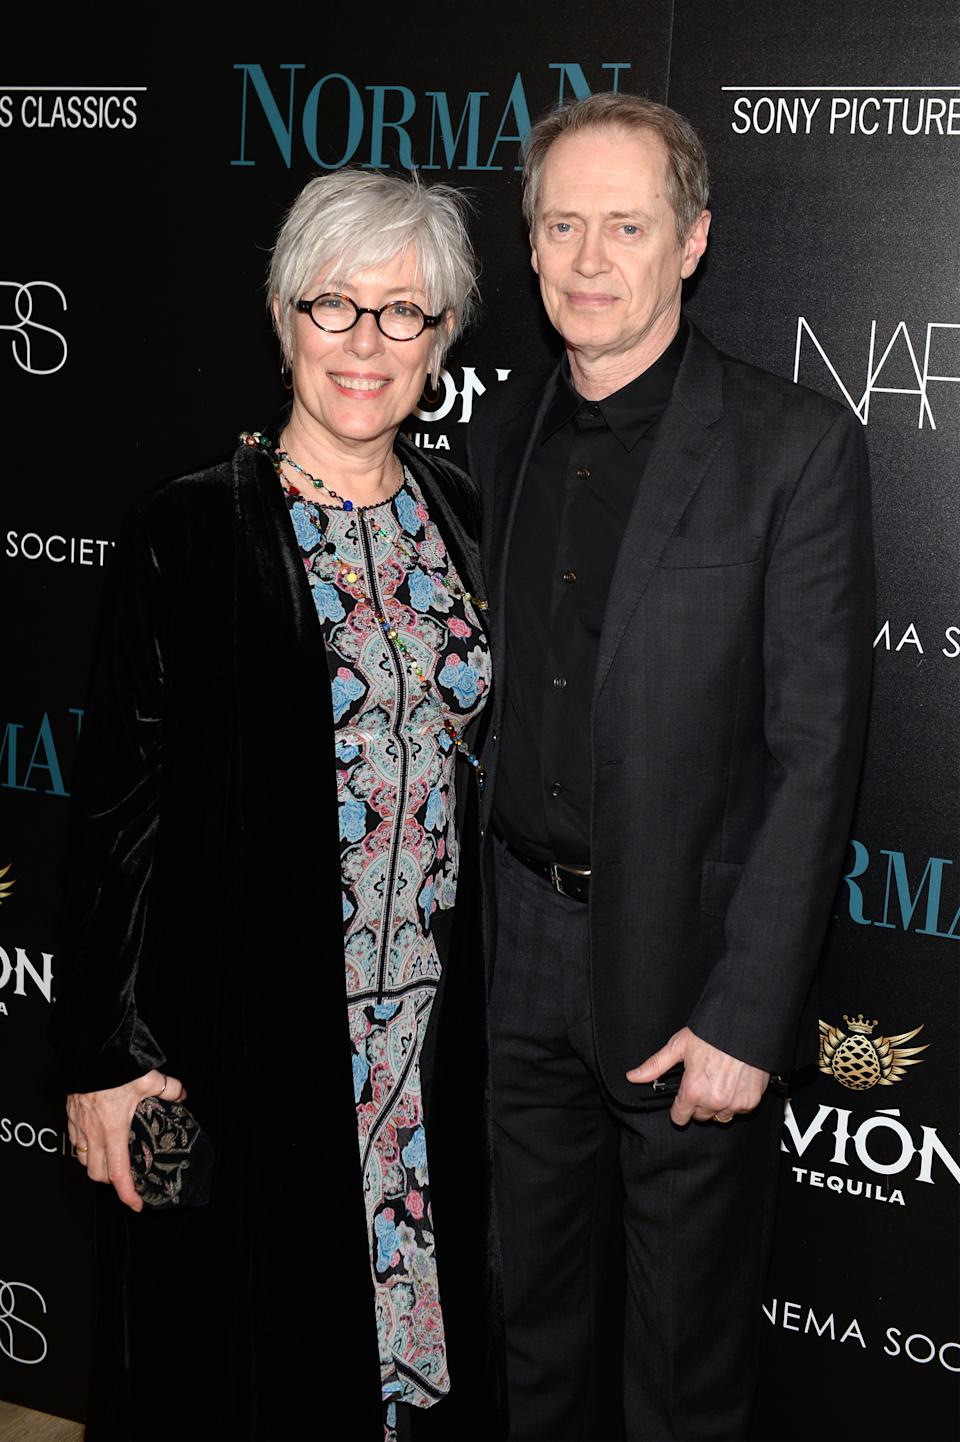 "NEW YORK, NY - APRIL 12:  Jo Andres and Steve Buscemi attend a screening of Sony Pictures Classics' ""Norman"" hosted by The Cinema Society with NARS & AVION at the Whitby Hotel on April 12, 2017 in New York City.  (Photo by Andrew Toth/FilmMagic)"